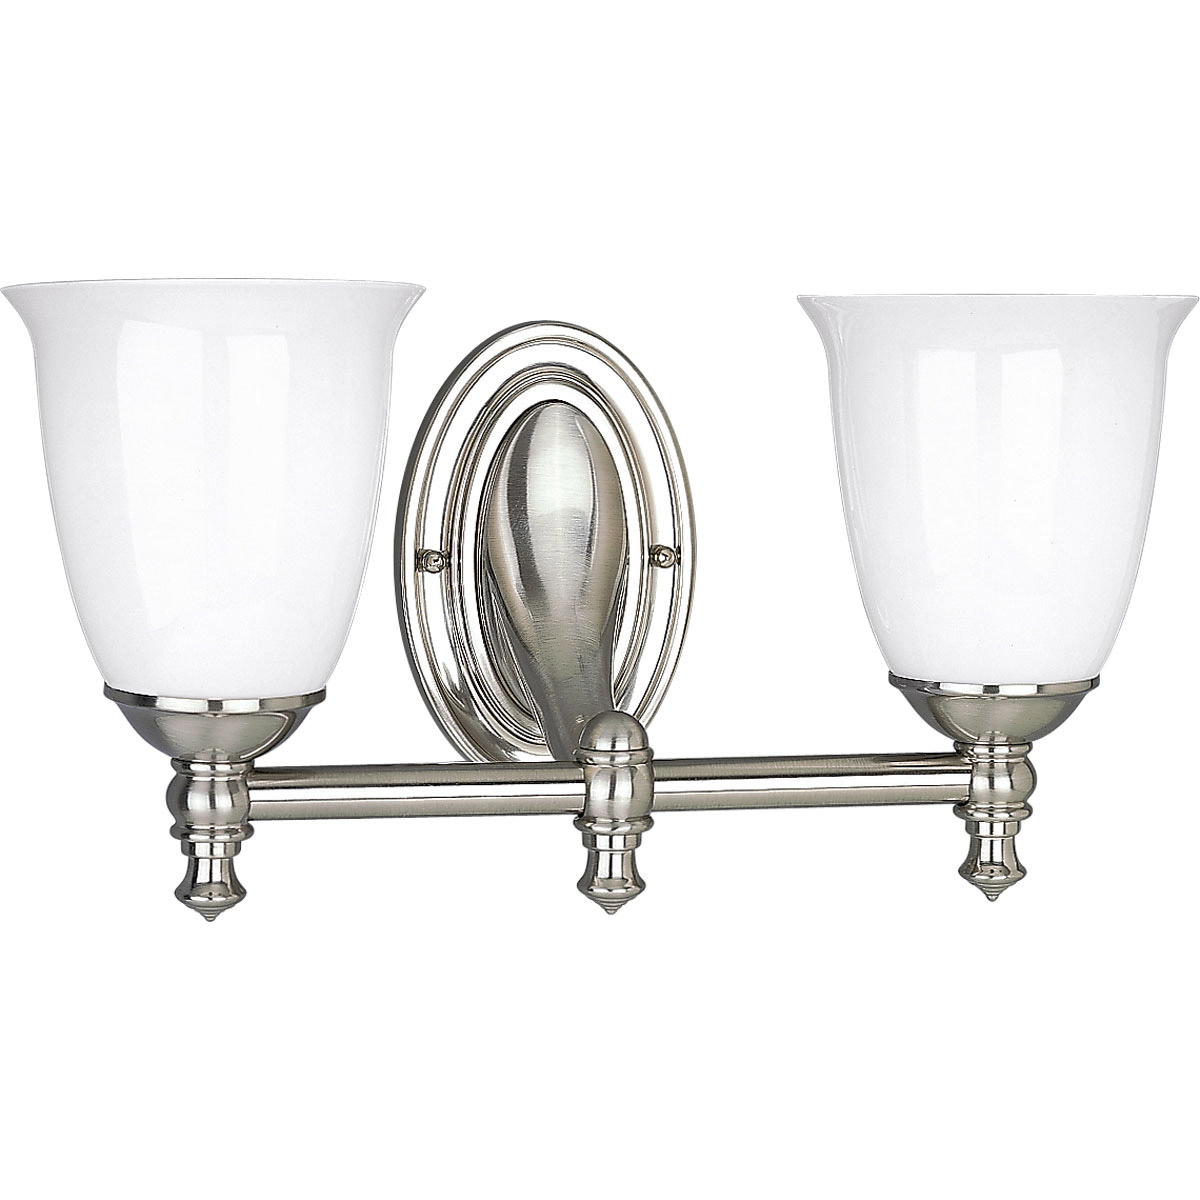 Polished Nickel Bathroom Vanity Light: Progress Lighting P3028-09 Victorian Bathroom Vanity Light